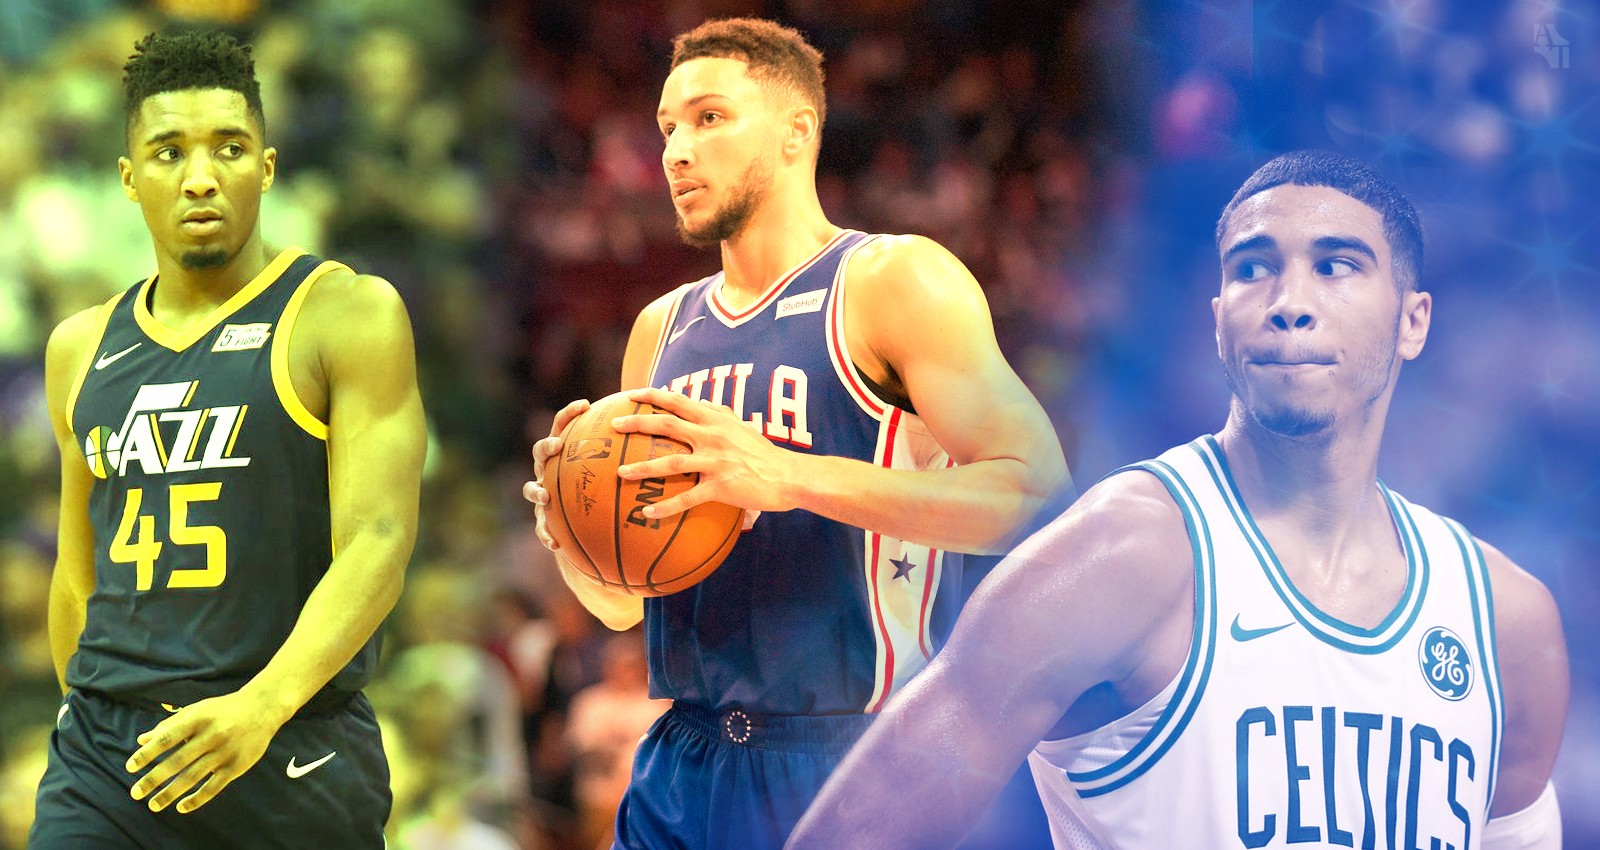 Who were the best rookies in the nba this season